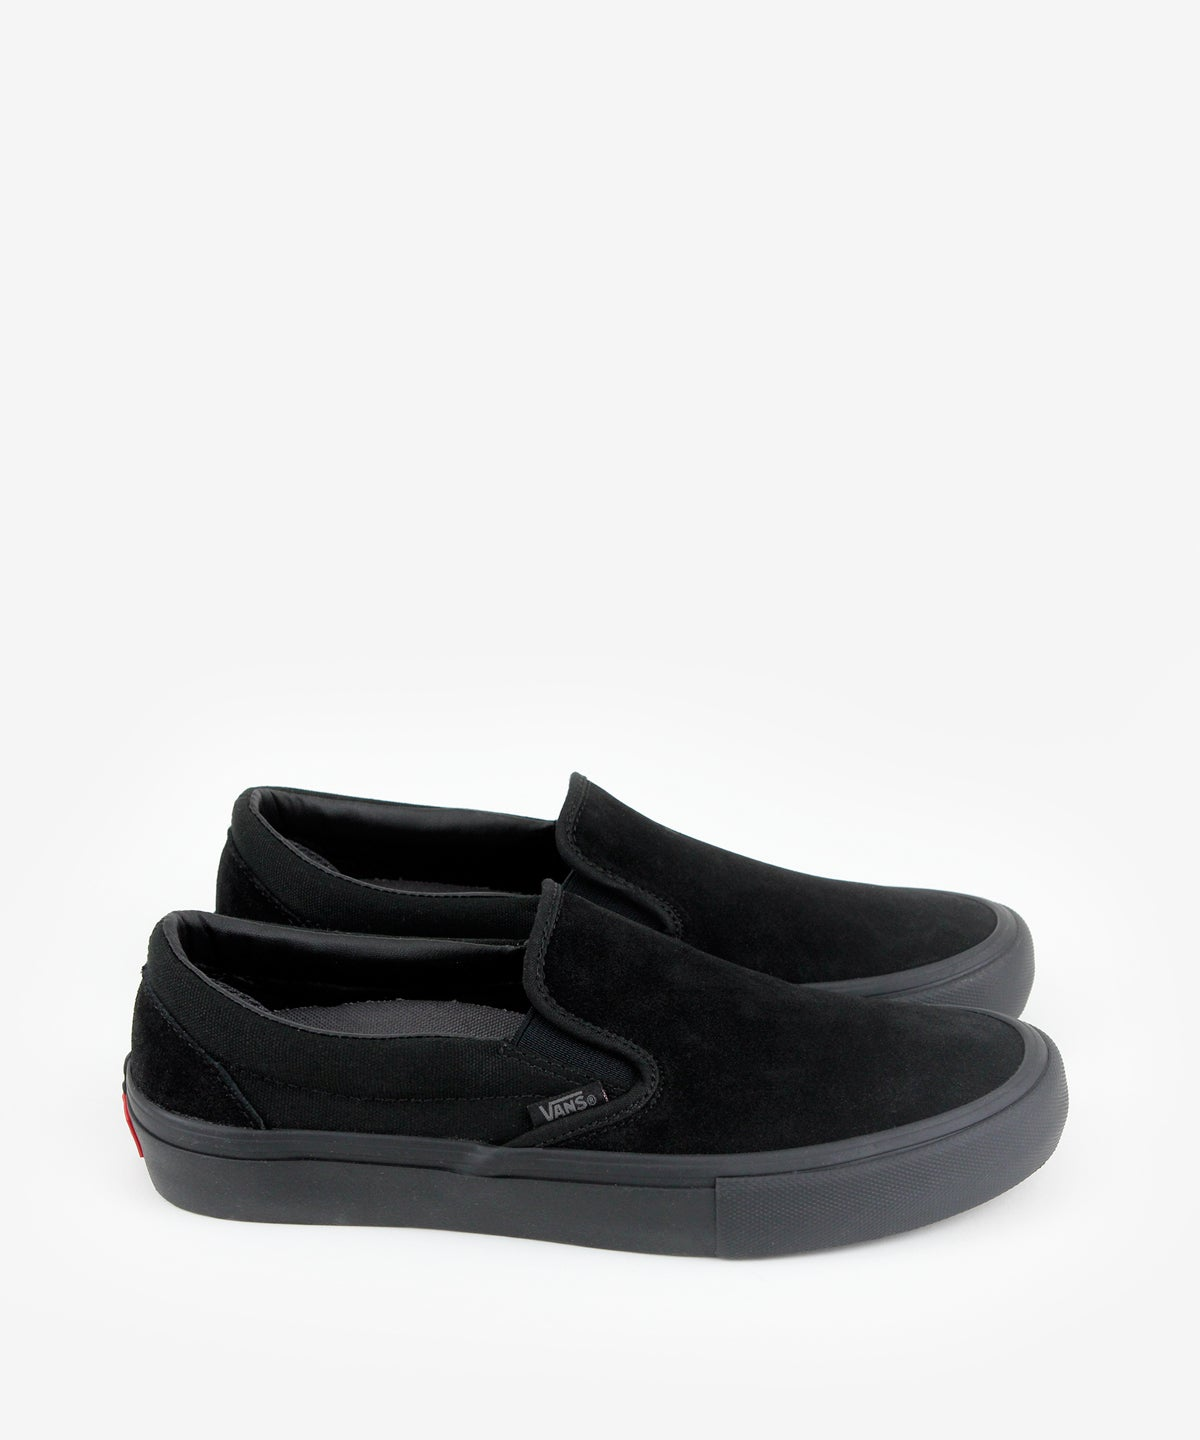 Image of VANS_SLIP-ON PRO :::BLACKOUT:::